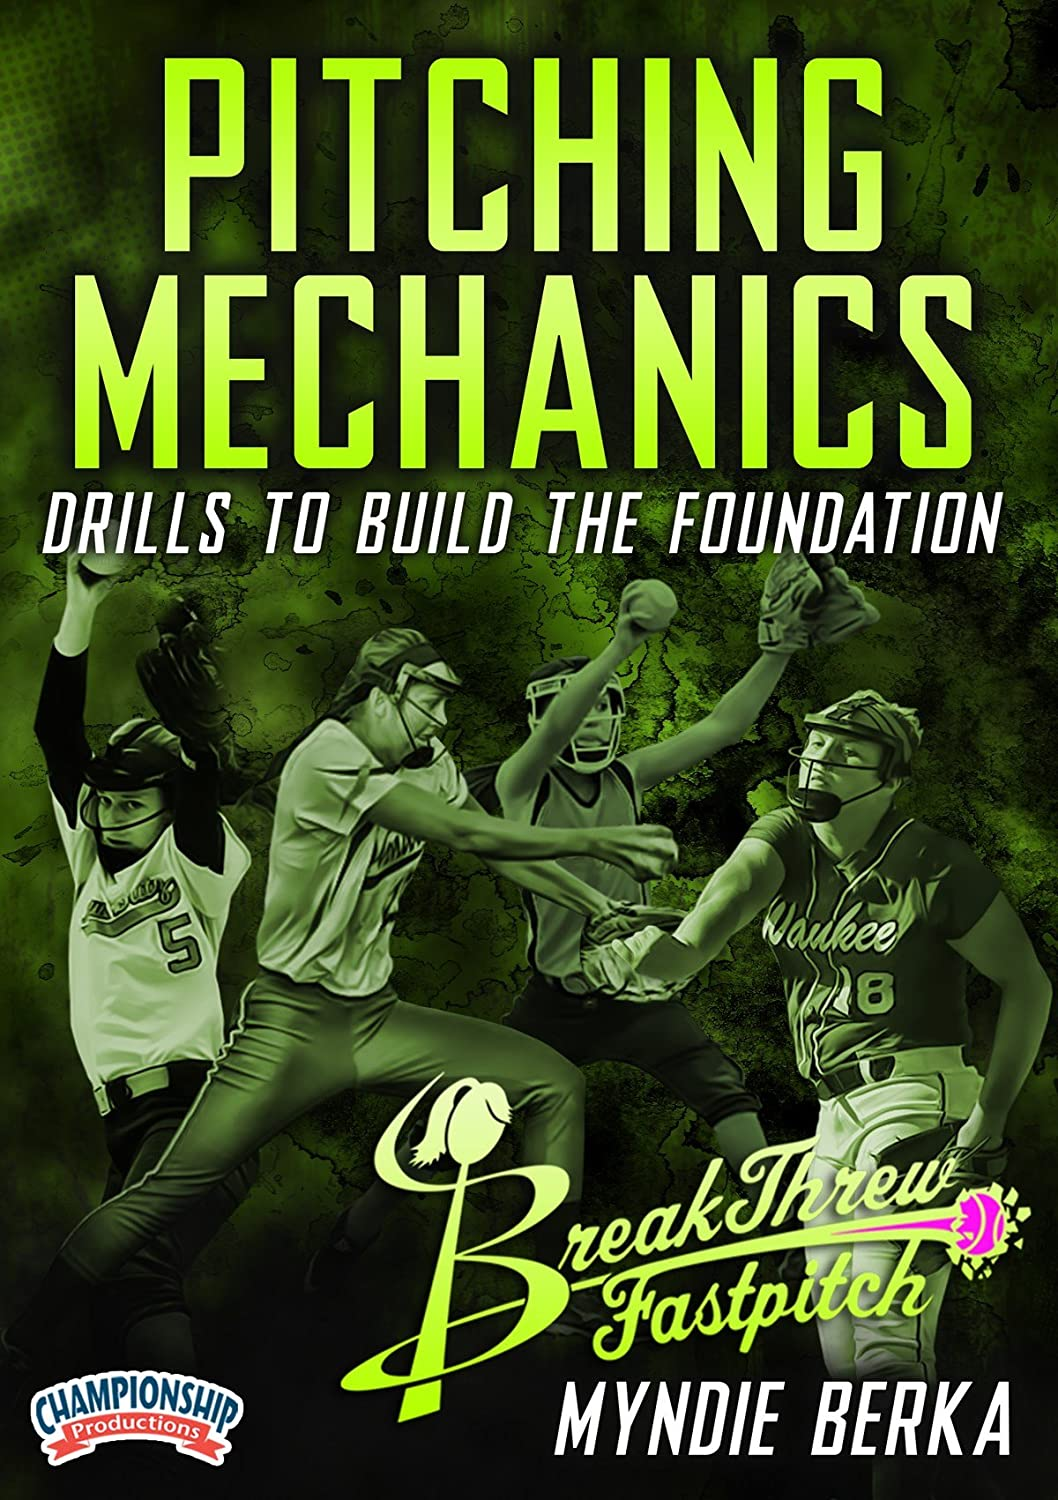 Softball Pitching Mechanics: High material Excellent Drills Build to Foundation the